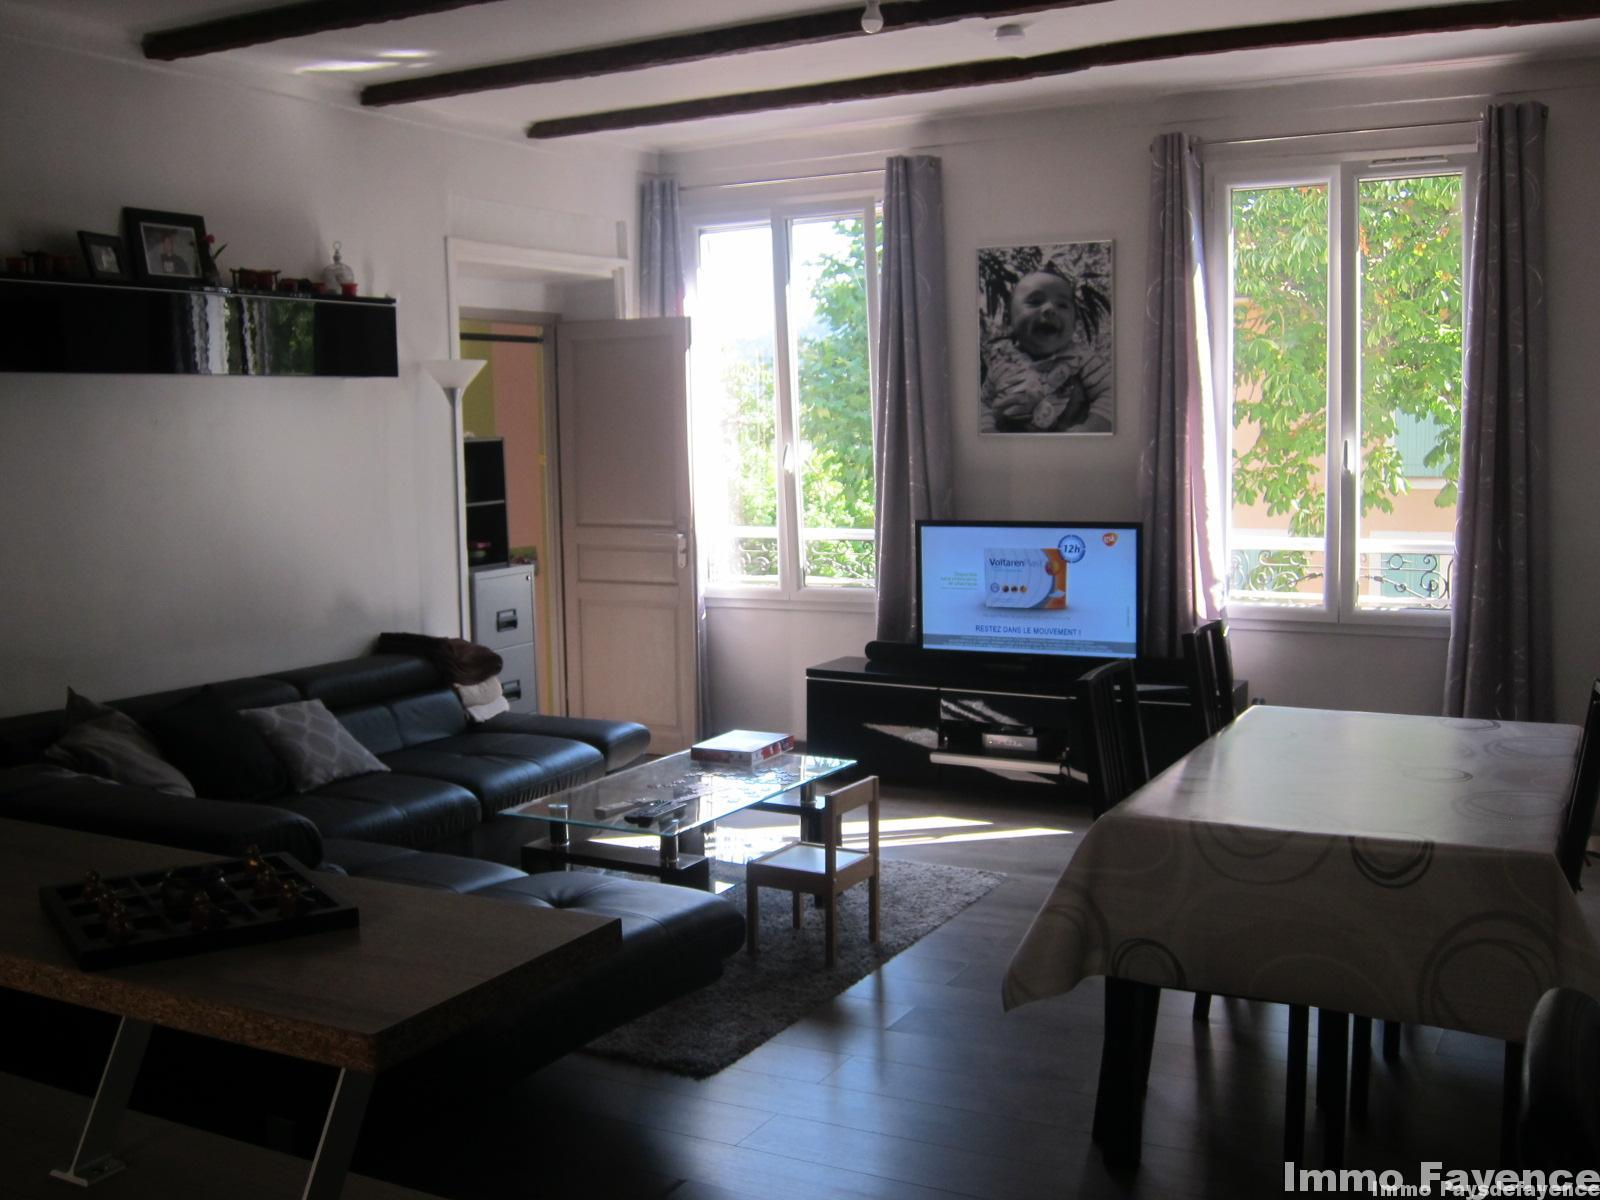 Bagnols en forêt bel appartement centre village 70m²